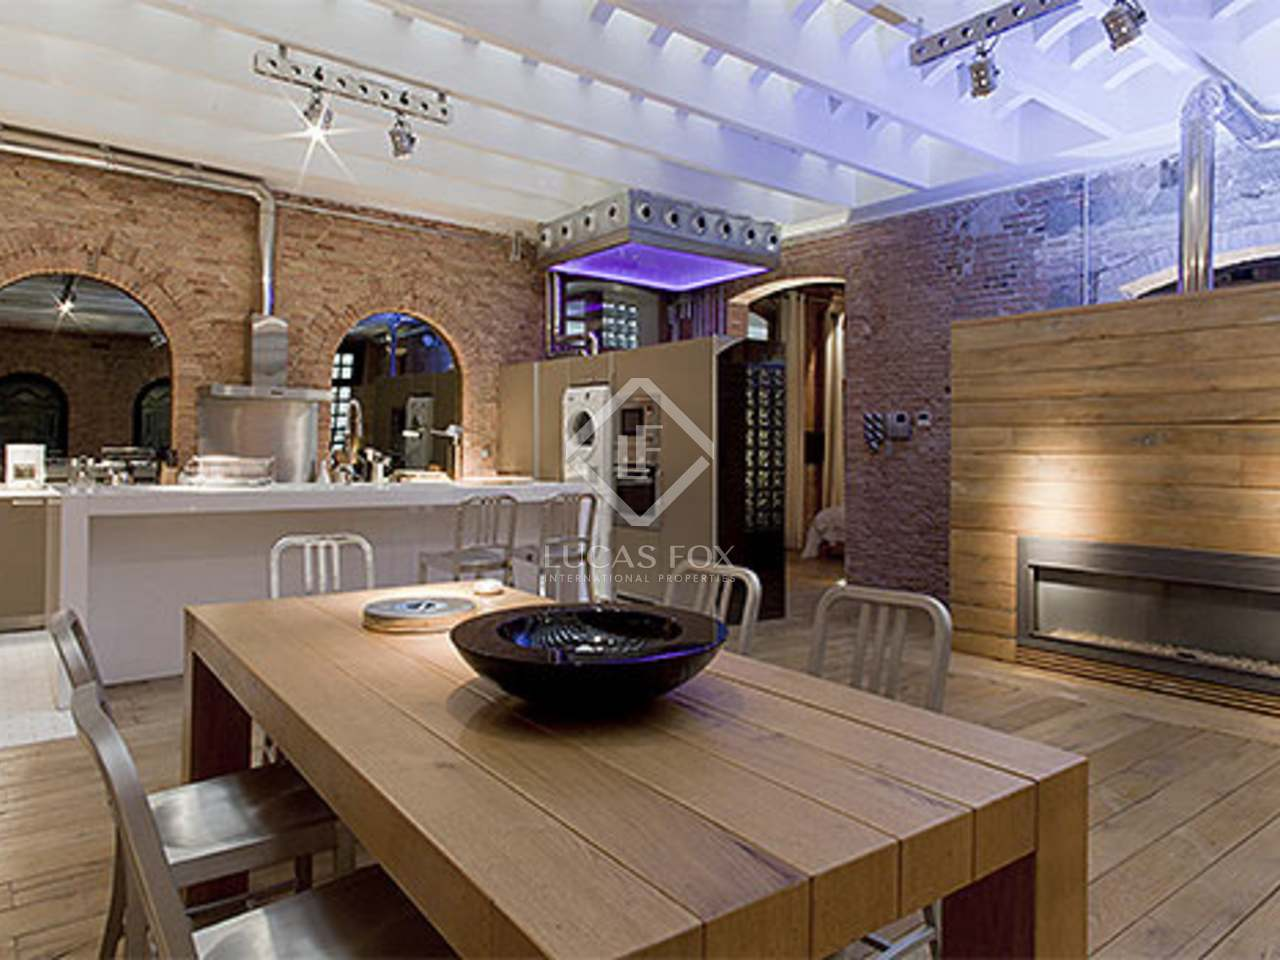 new york style loft apartments for long term rent in the old town